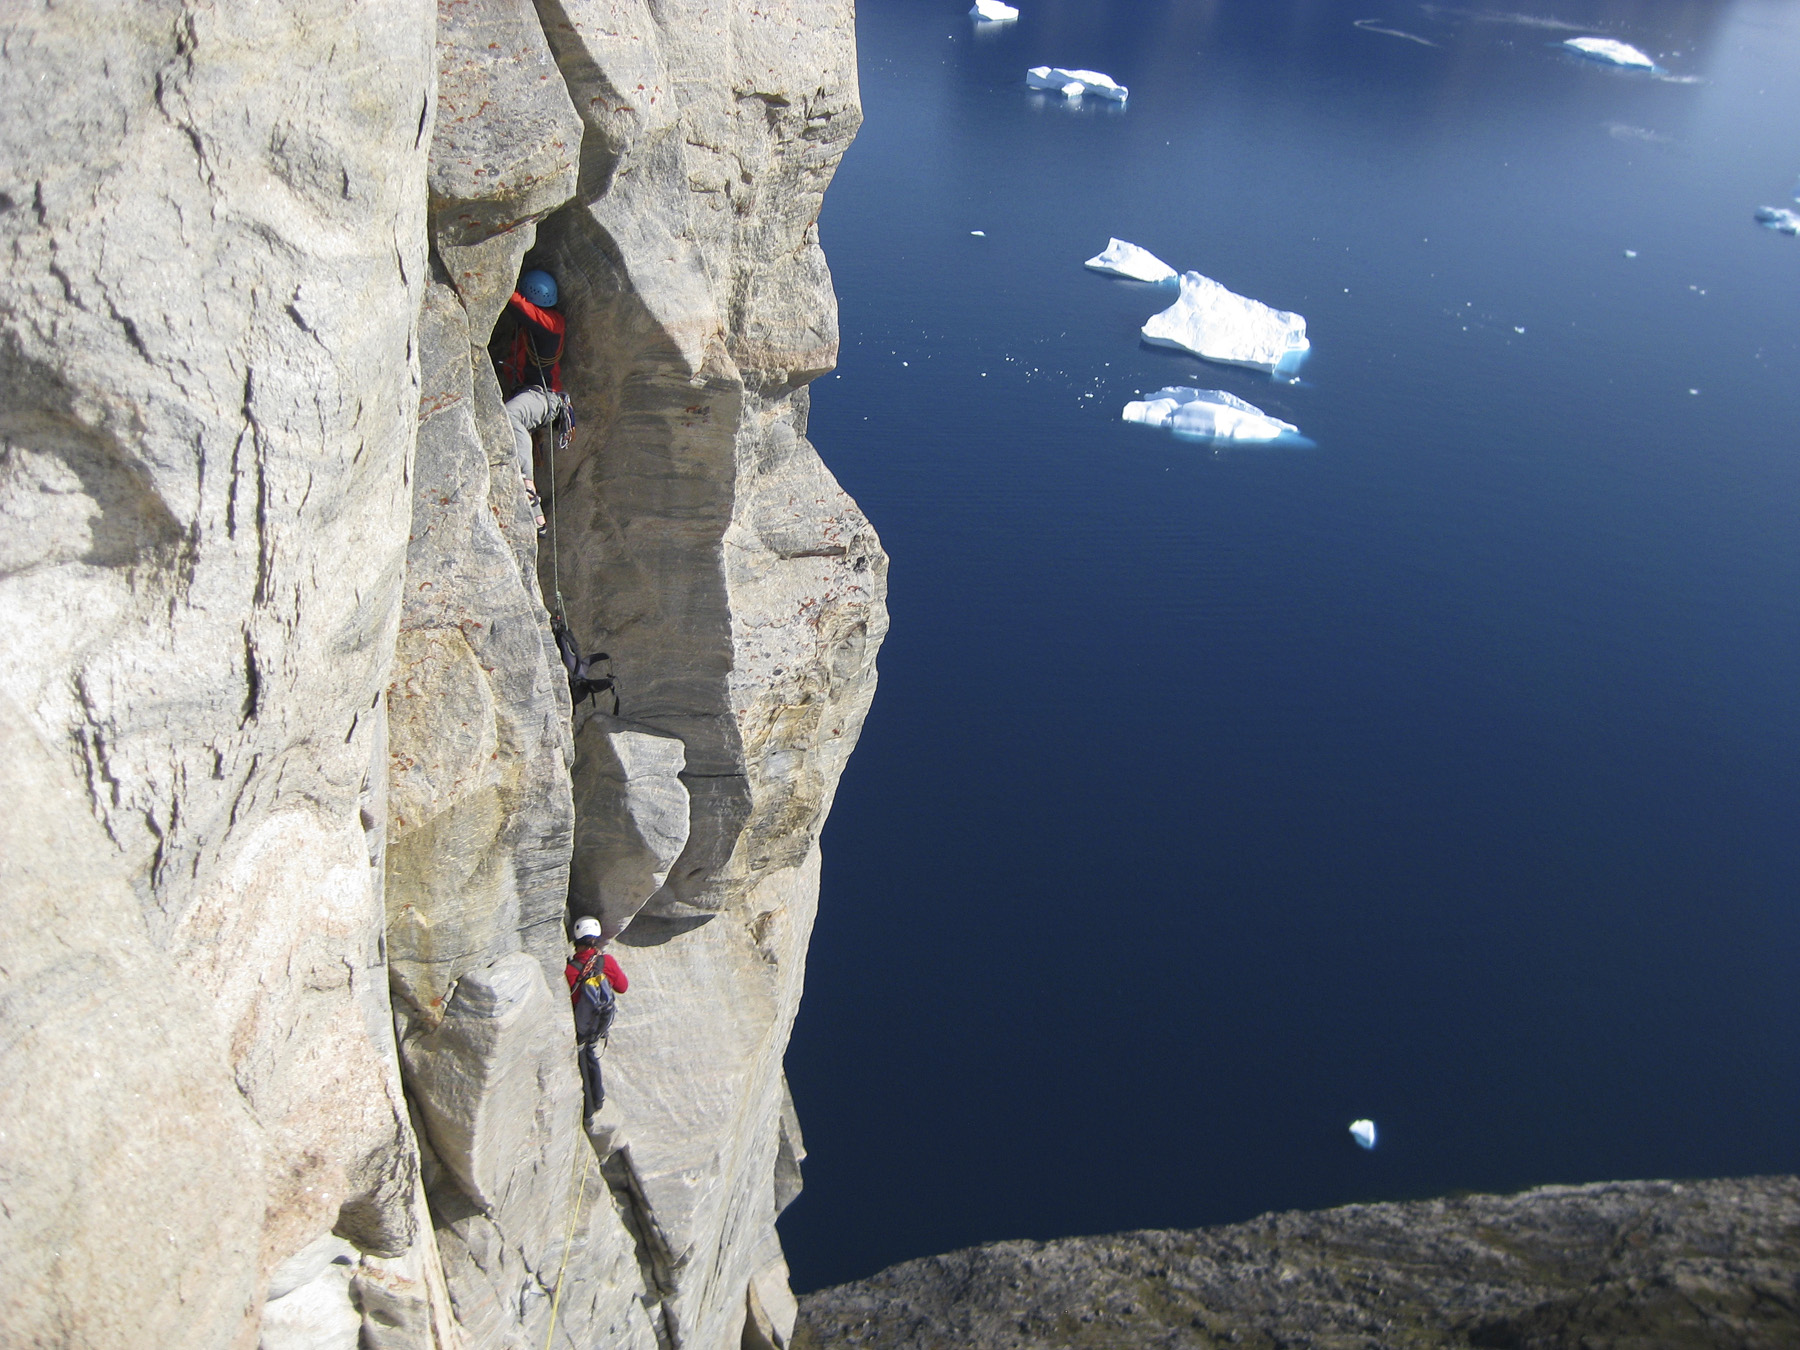 Silvan Leinss following pitch five (5.9) of the Doyle-Leinss Route (just lead by Sam Doyle) on Ummannaq.